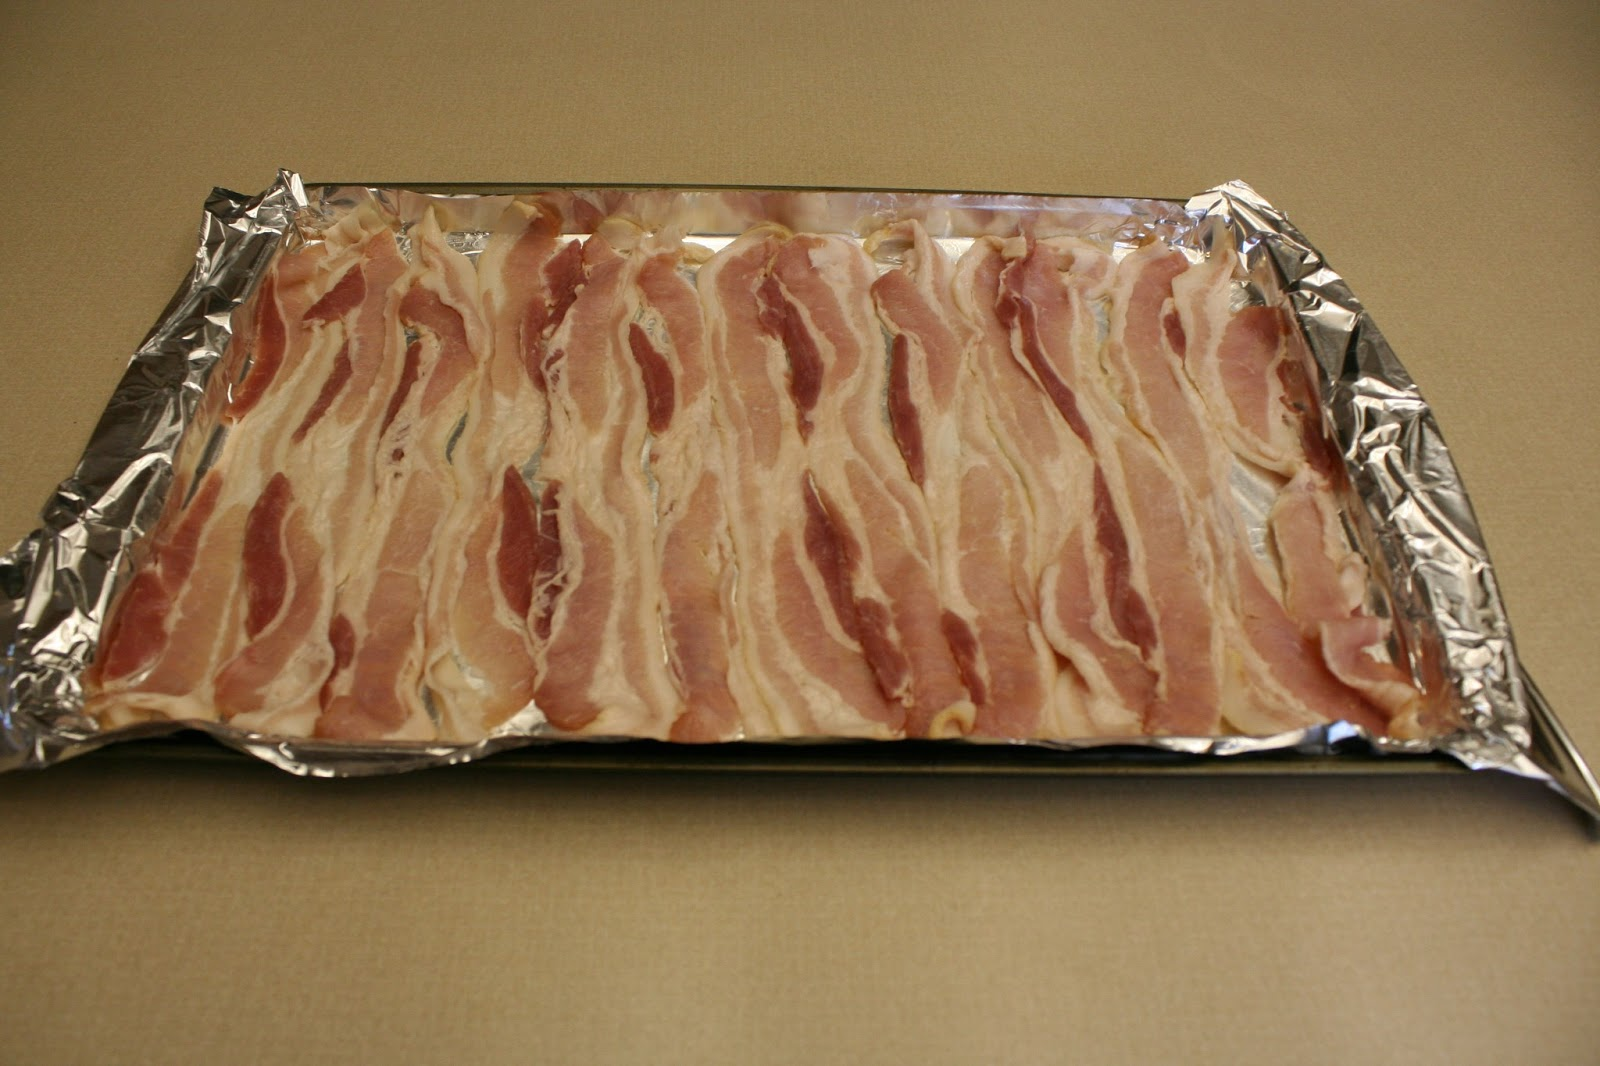 how to stop bacon from spitting